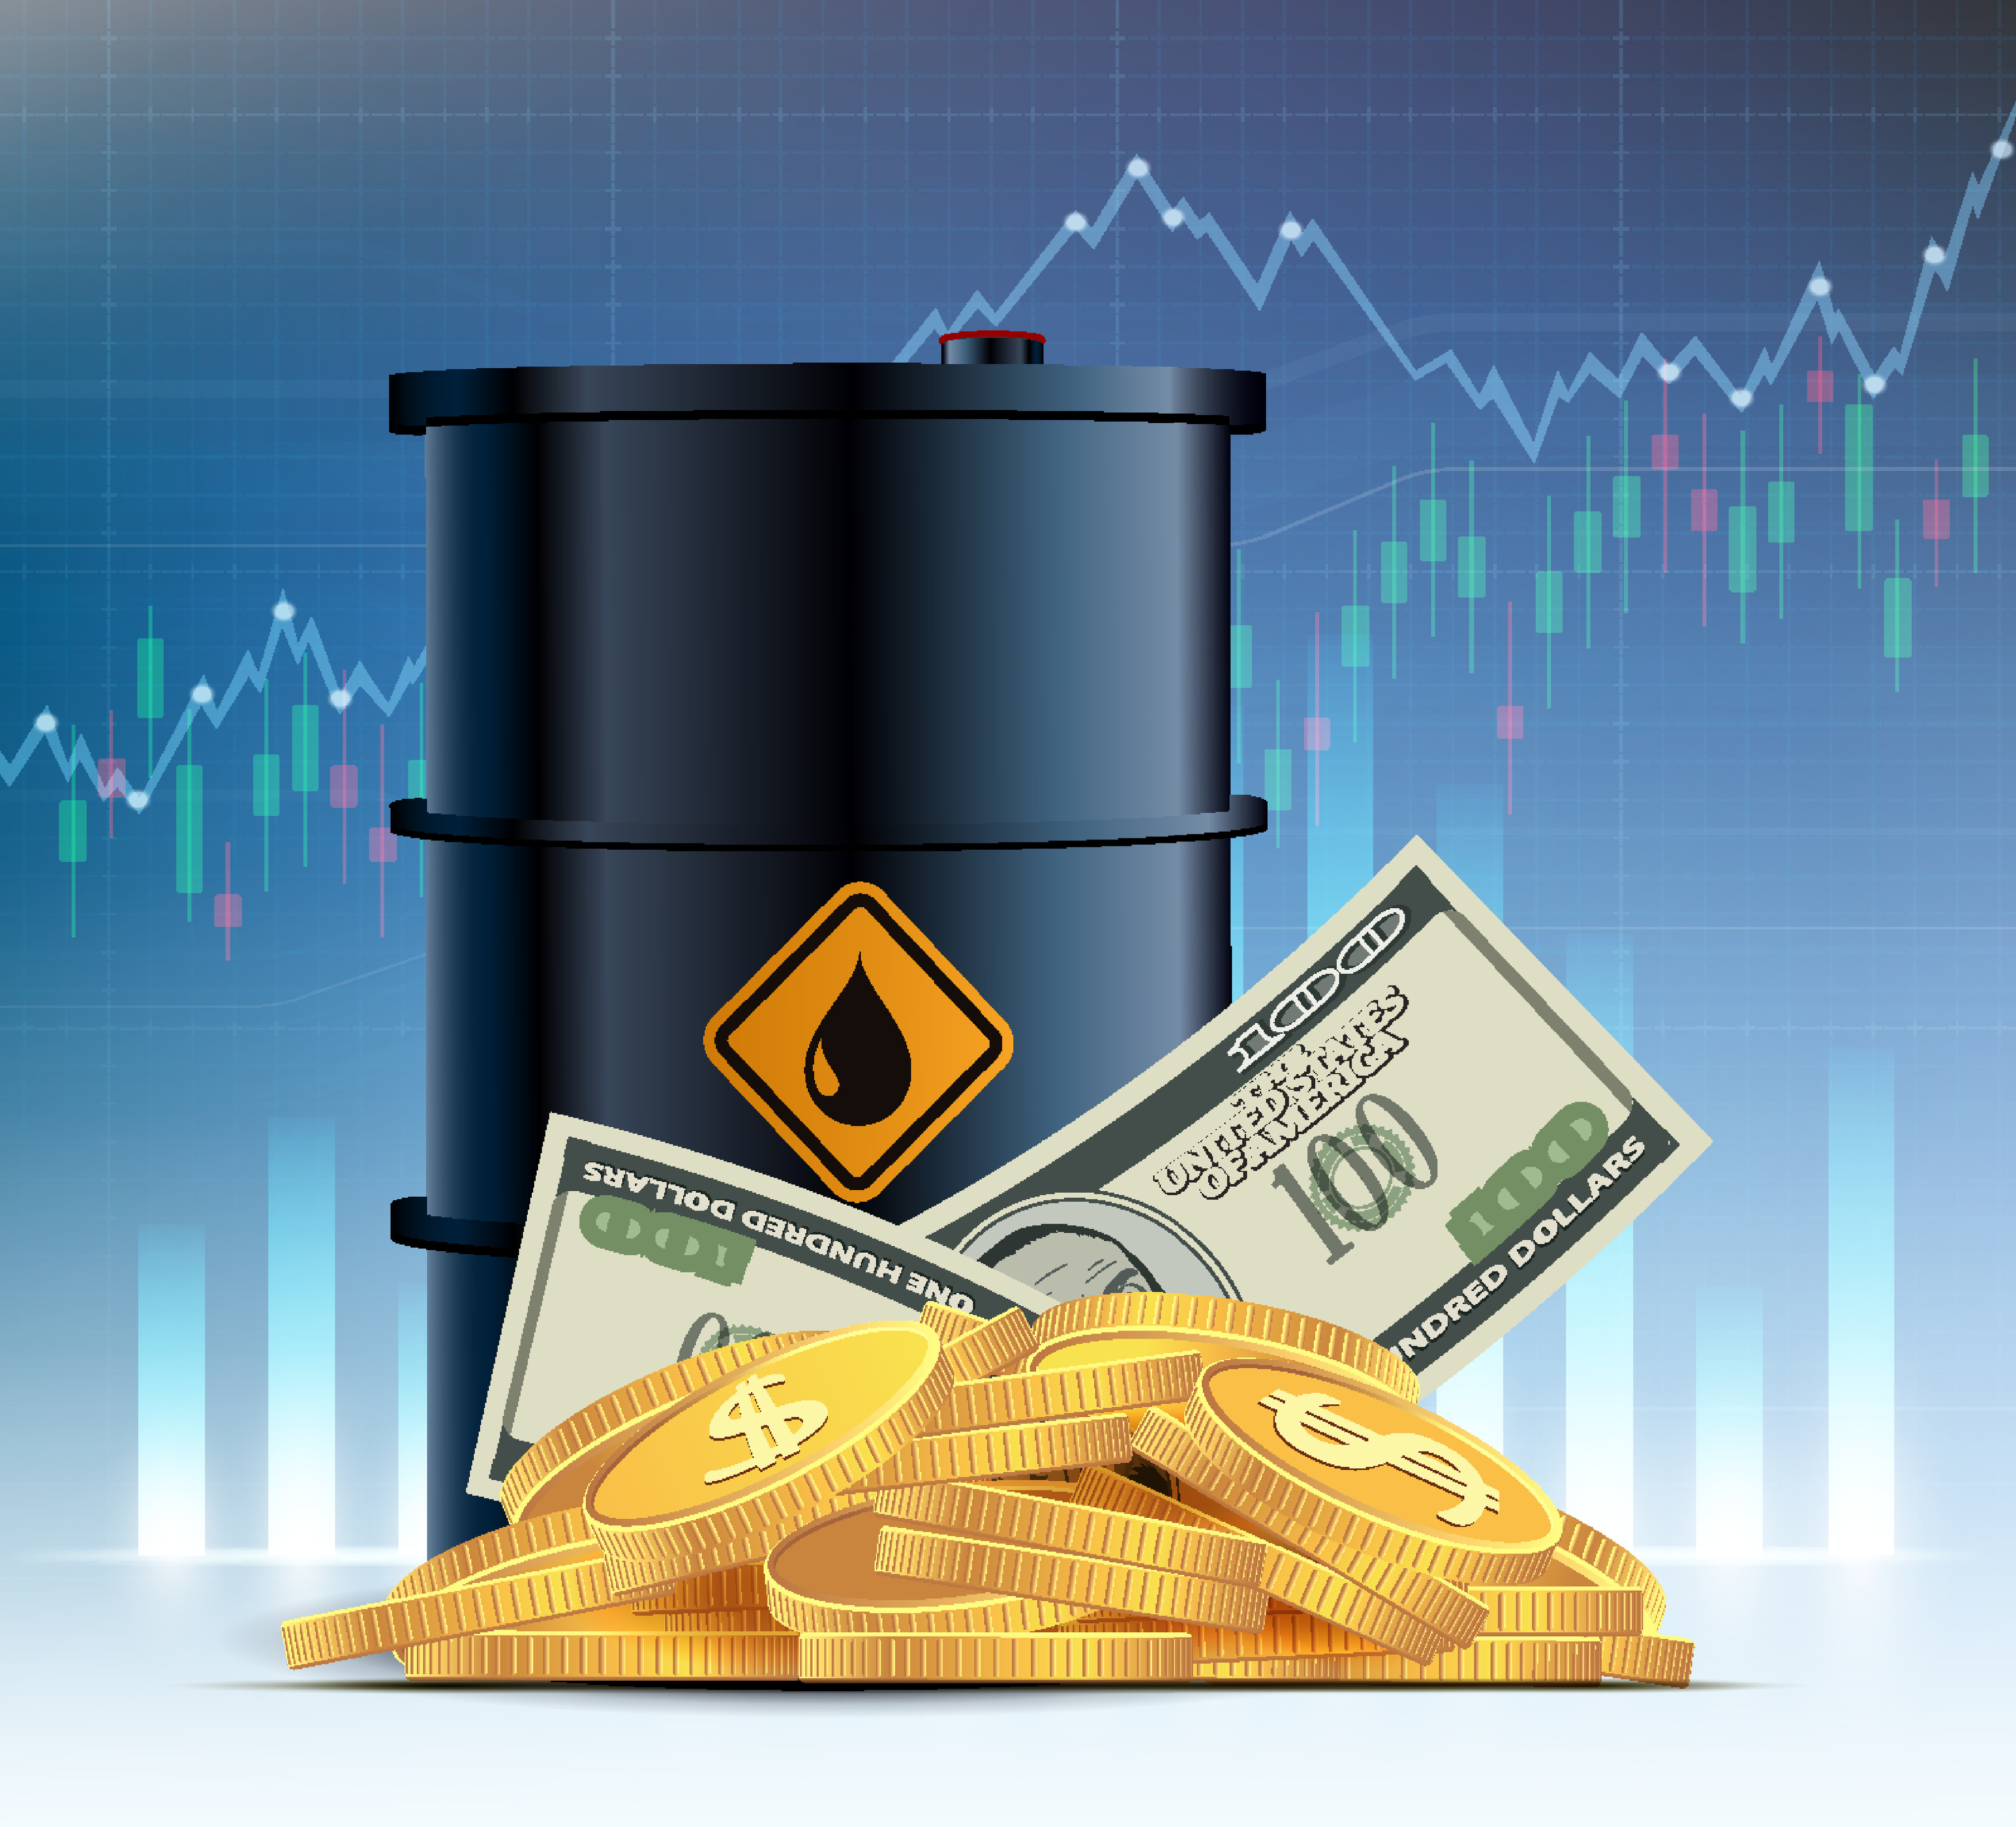 Oil steady, gold rises on higher yields